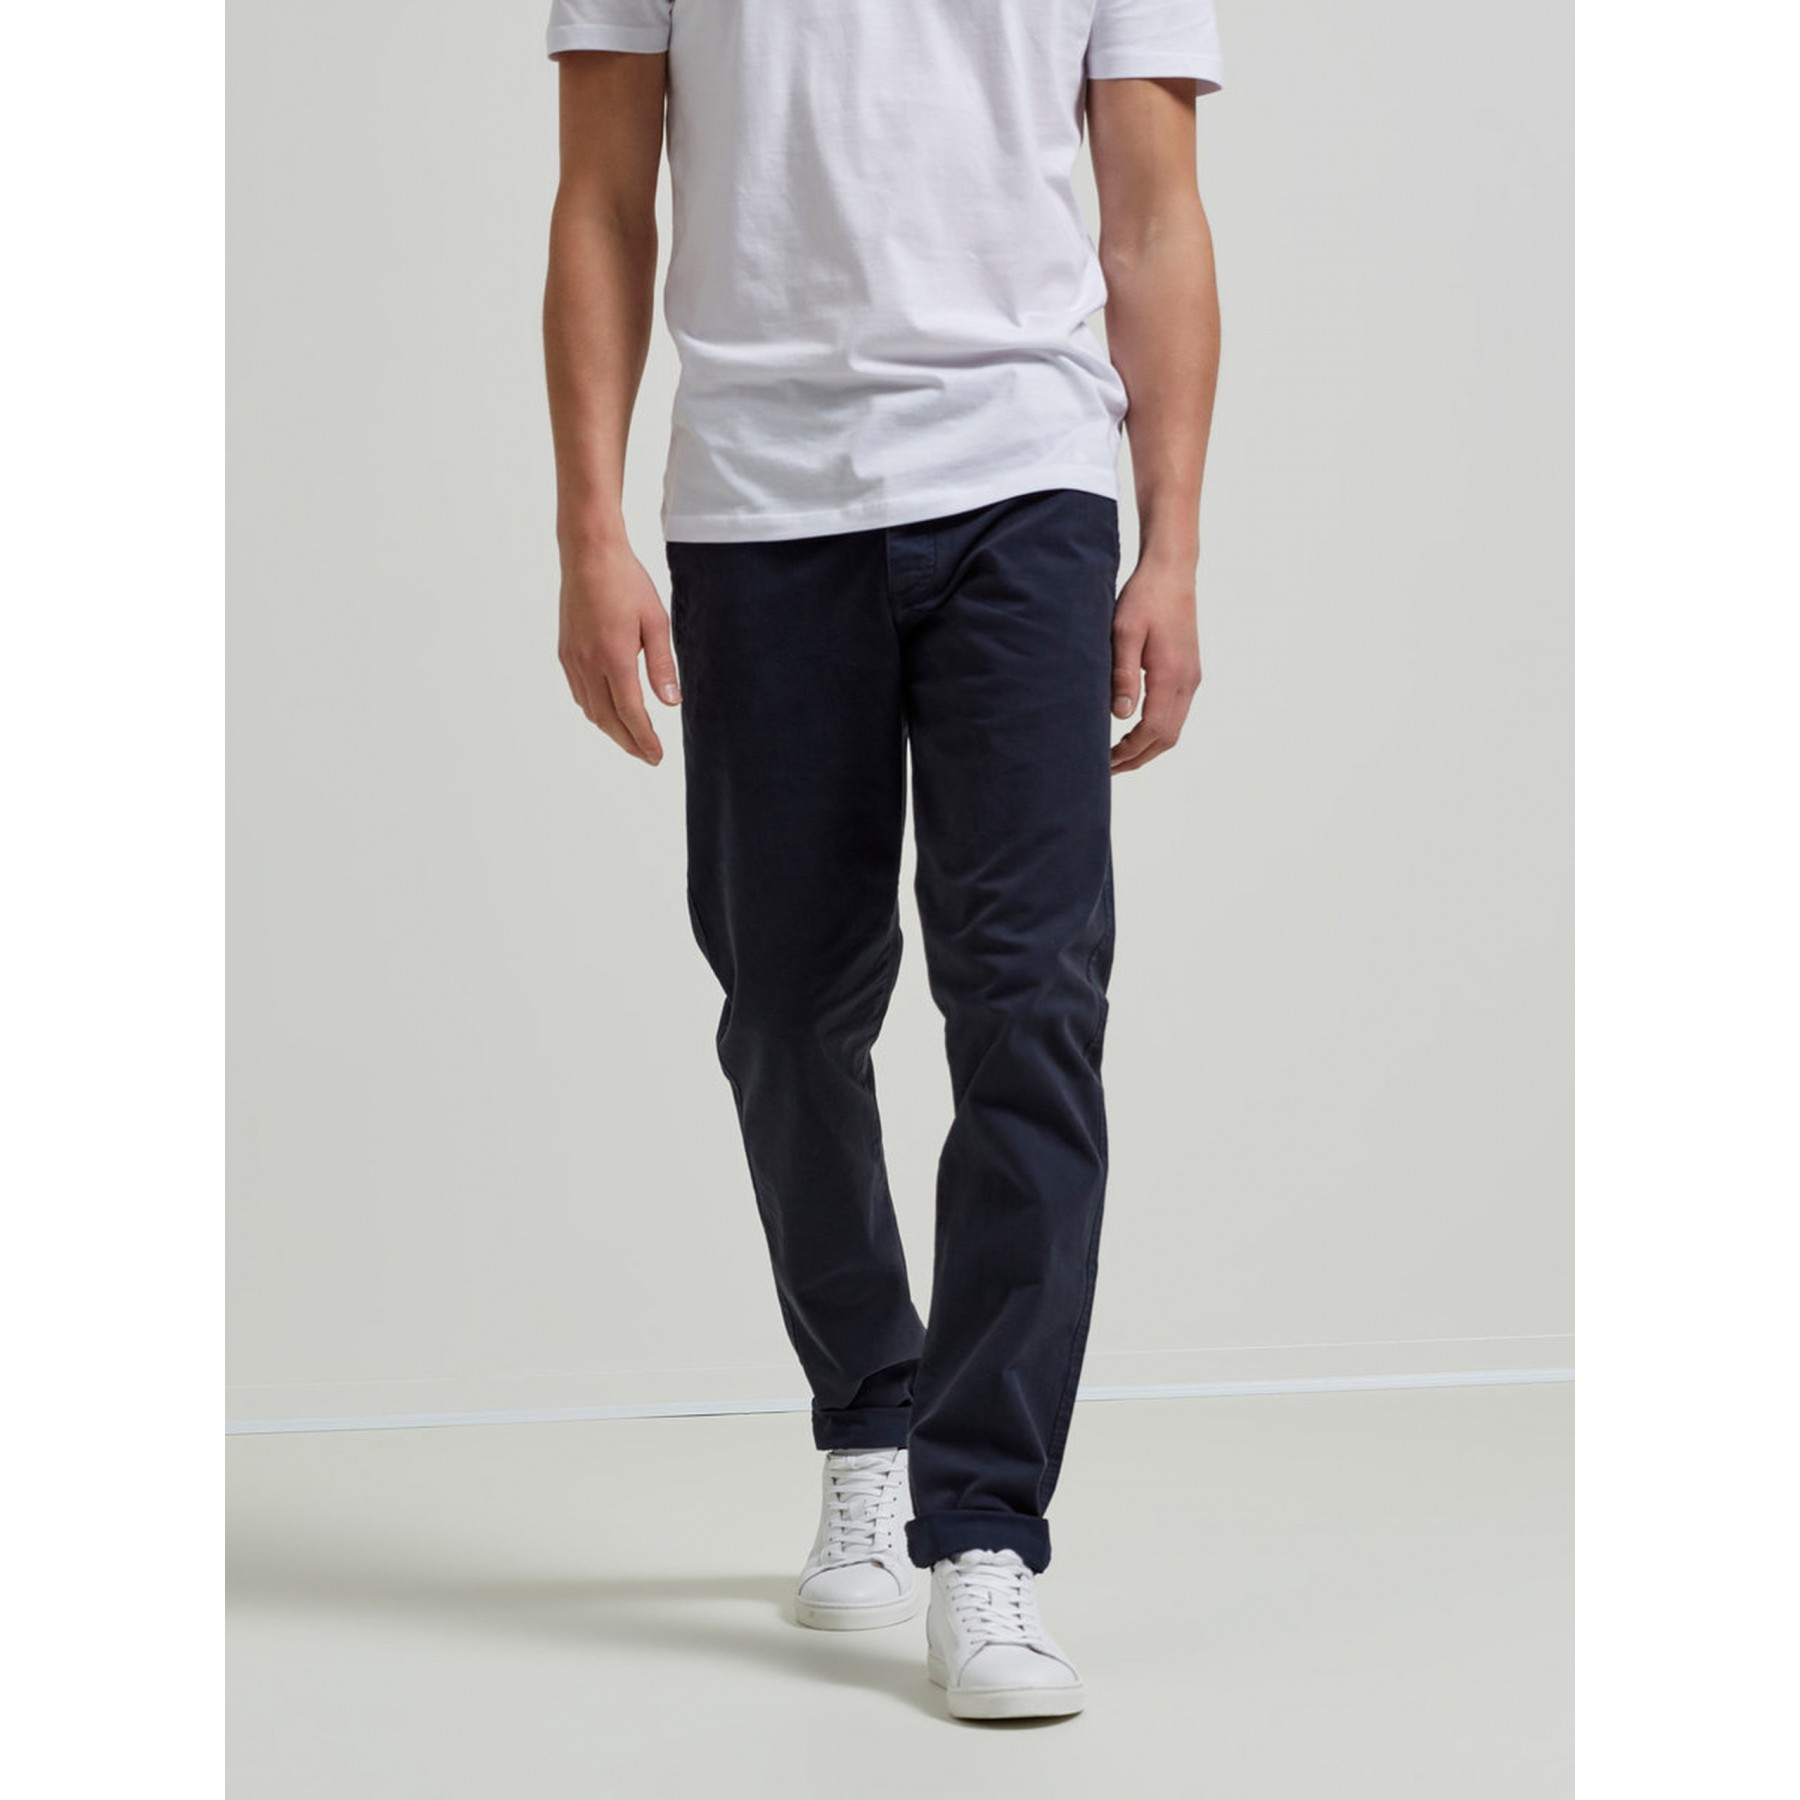 Selected Chinoshousut, One Luca Navy Skinny Fit Tummansininen